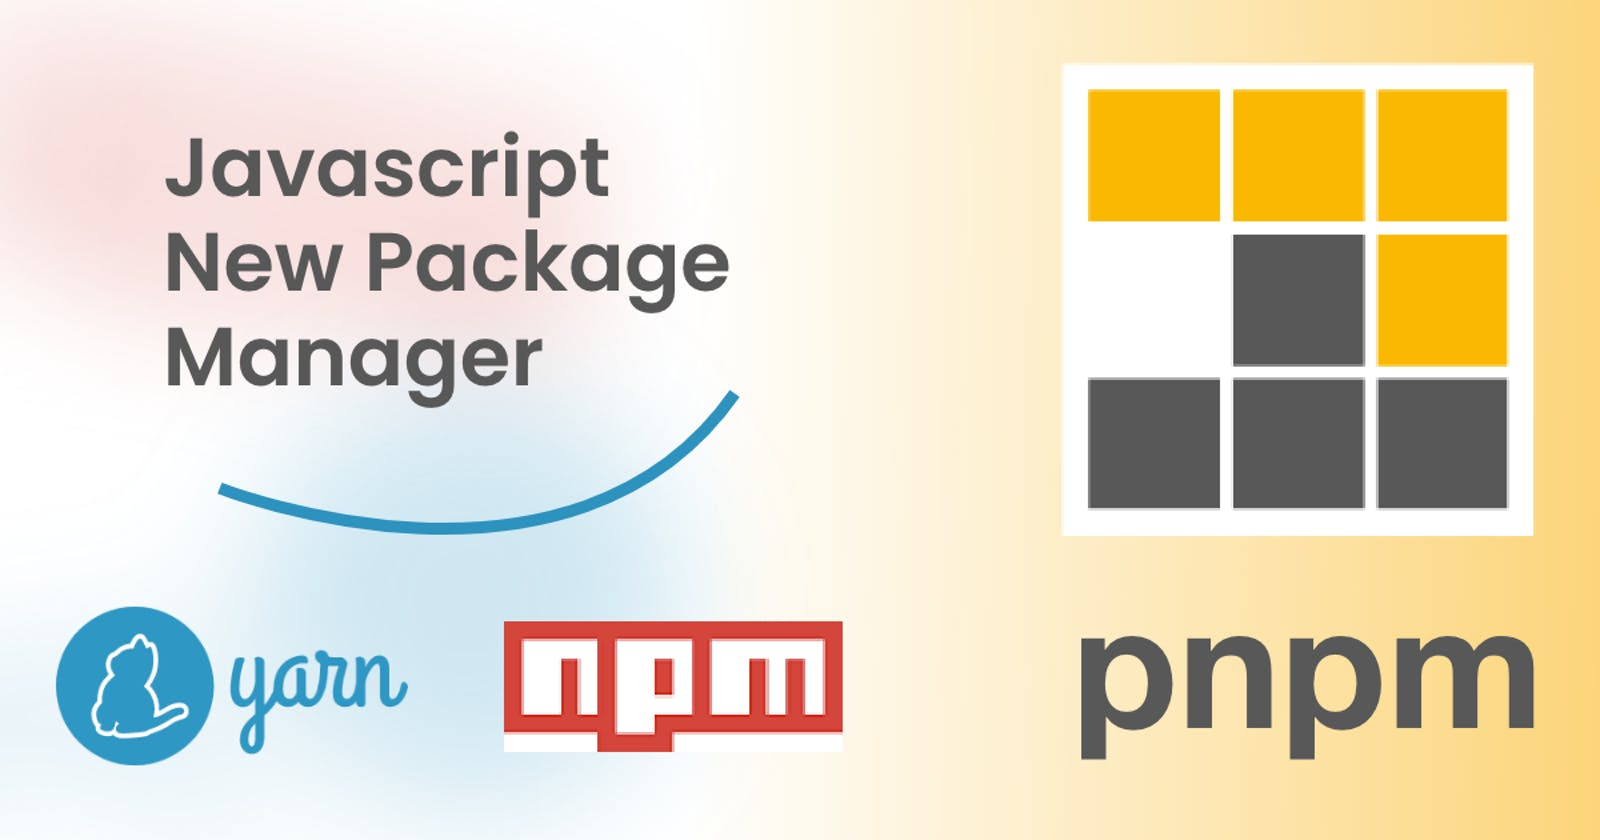 pnpm: Javascript New Package Manager